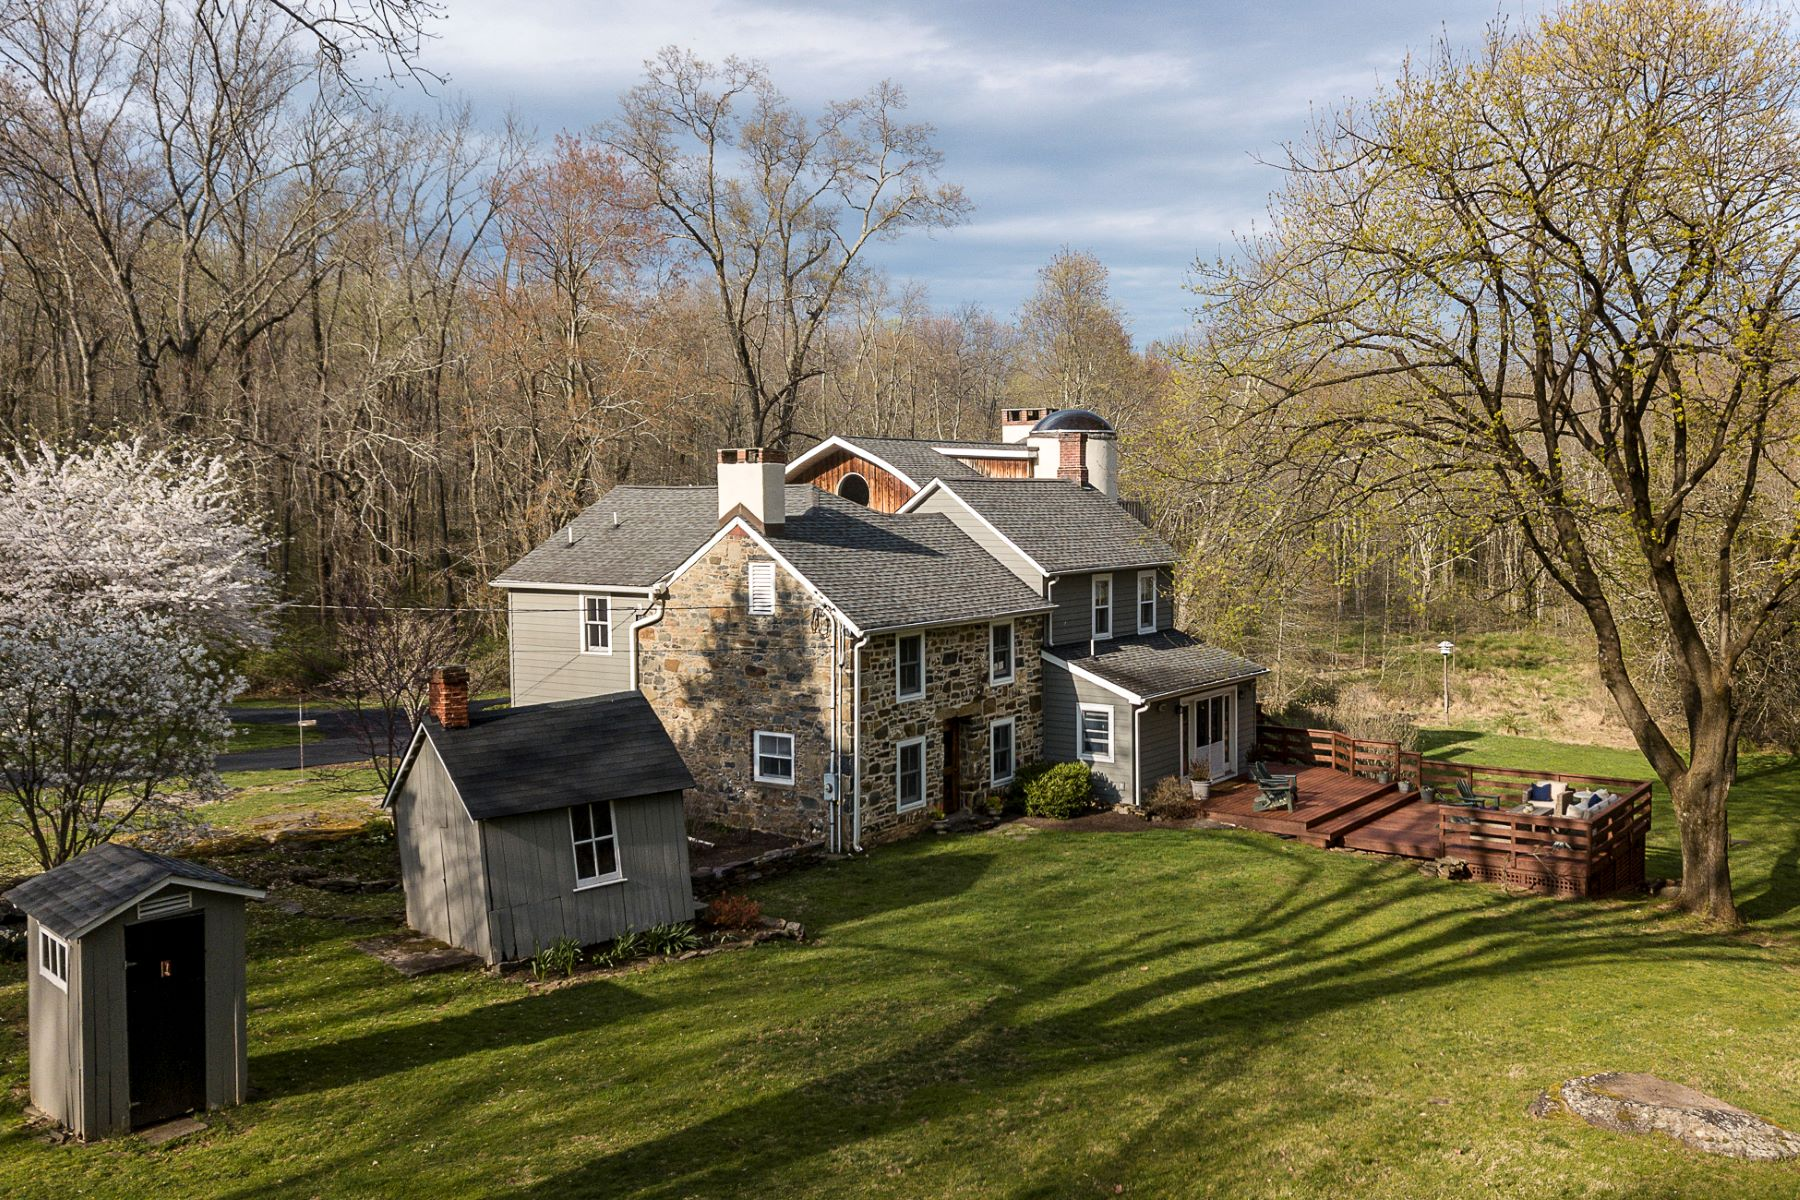 Additional photo for property listing at An Incredibly Special Home 54 Mountain Church Road, Hopewell, New Jersey 08525 United States